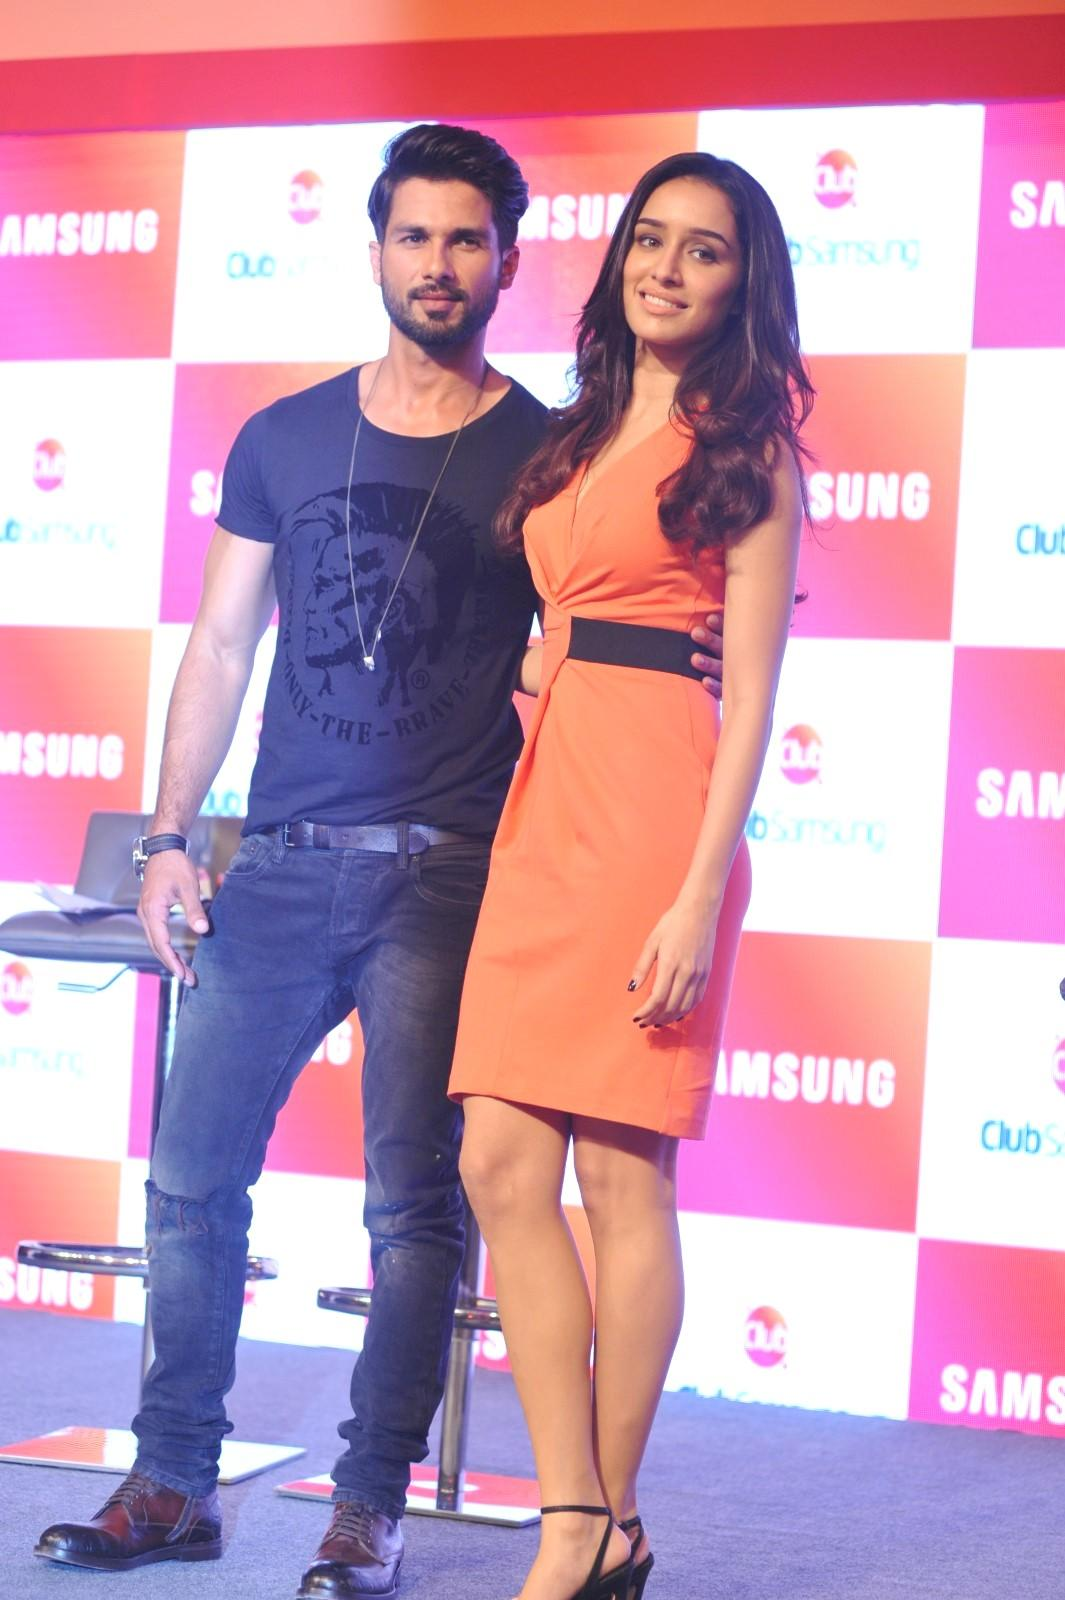 Hot Shraddha Kapoor Looks Stunningly Sexy & Beautiful in Orange Dress with Shahid Kapoor